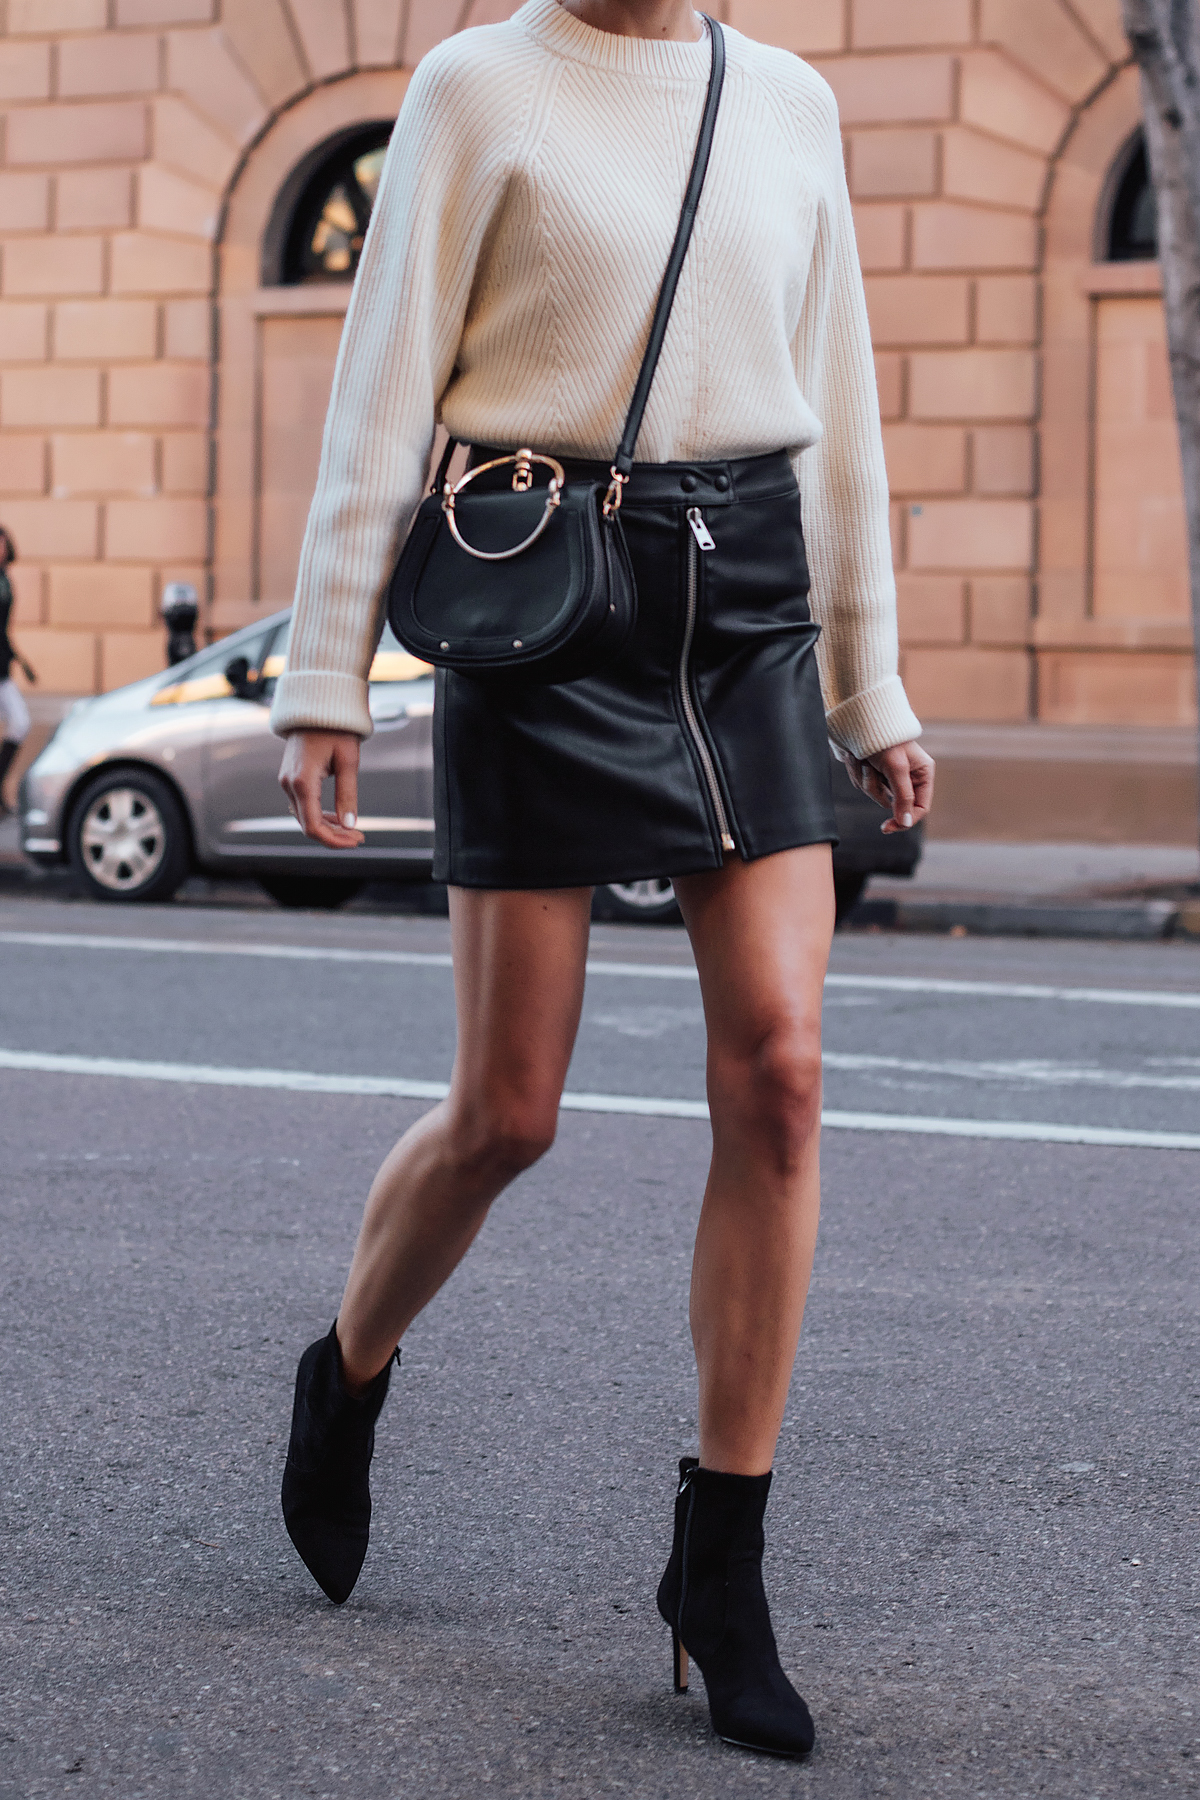 Woman Wearing AllSaints White Sweater Black Faux Leather Mini Skirt Black Chloe Nile Dupe Black Ankle Booties Fashion Jackson San Diego Fashion Blogger Street Style